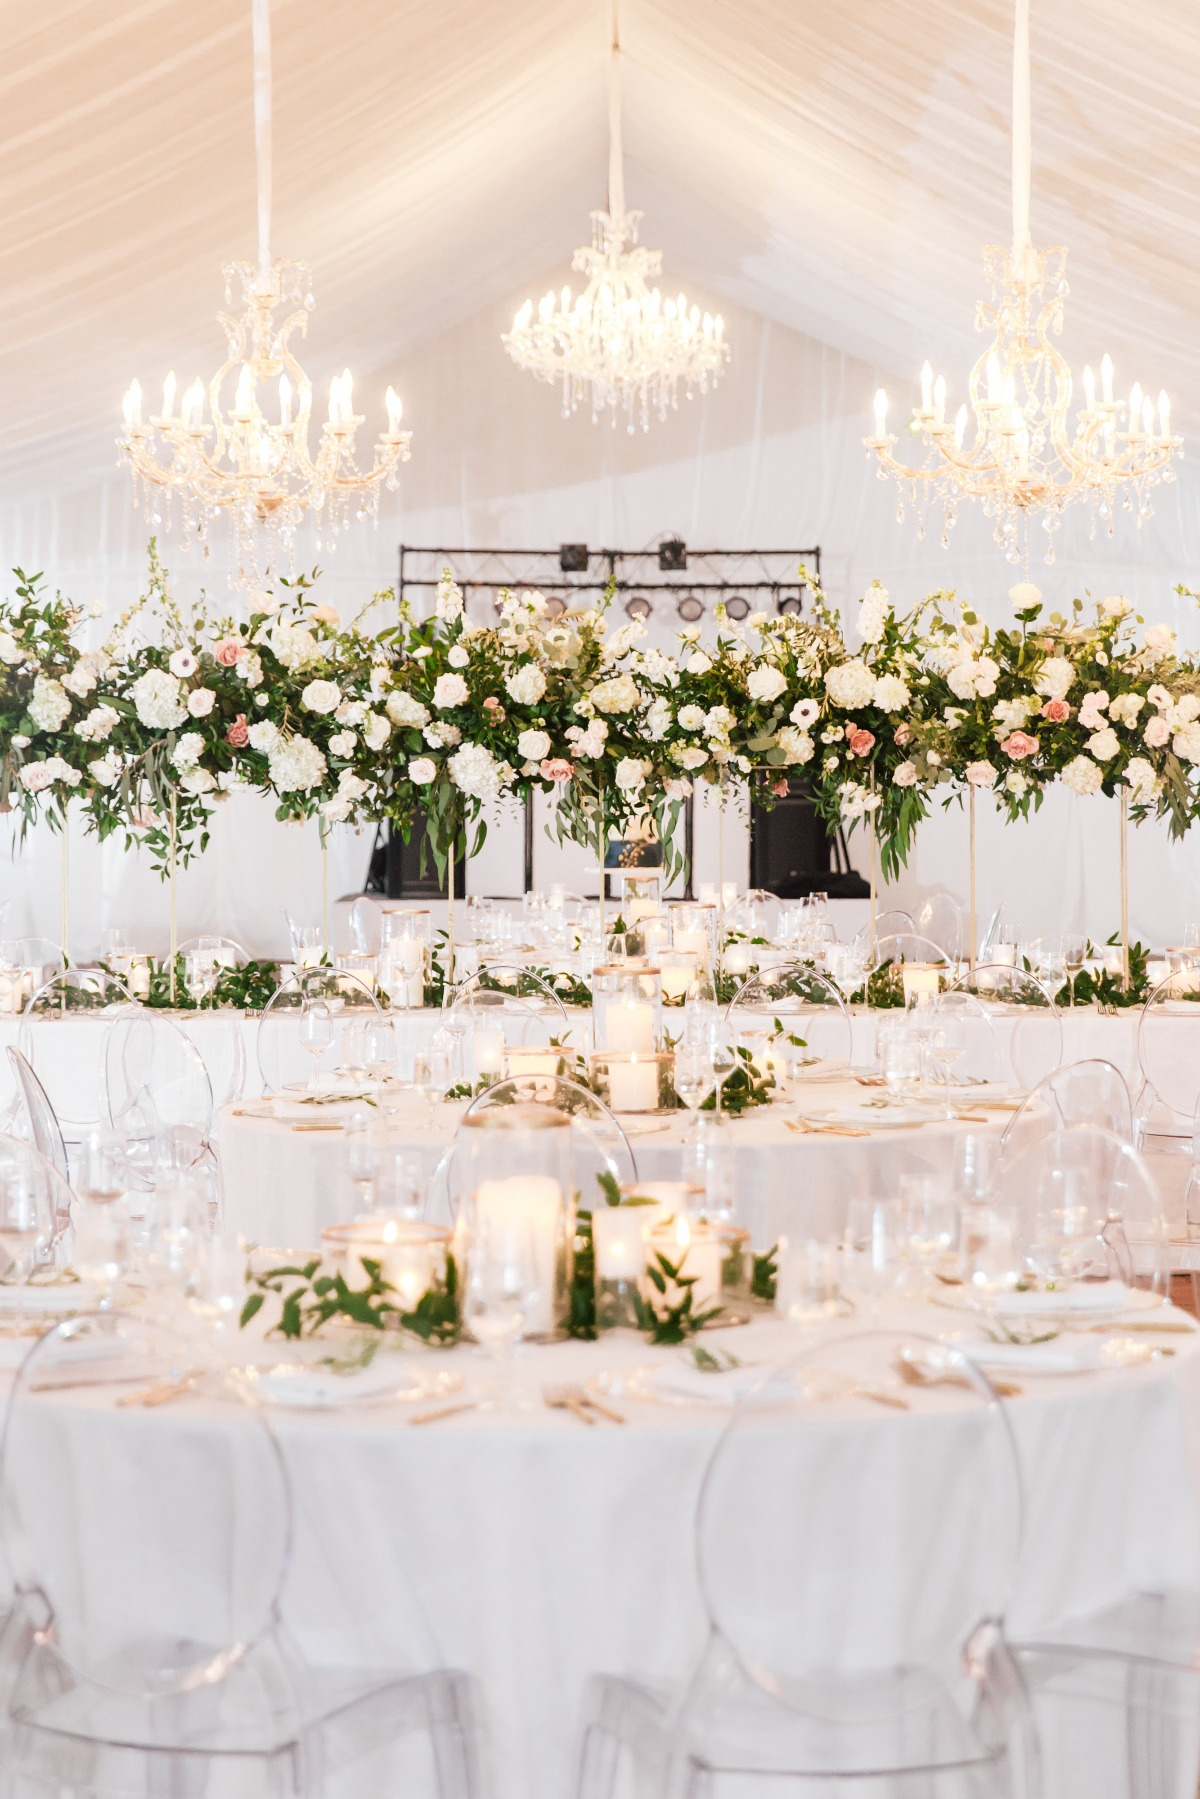 elegant wedding with acrylic chairs and chandeliers